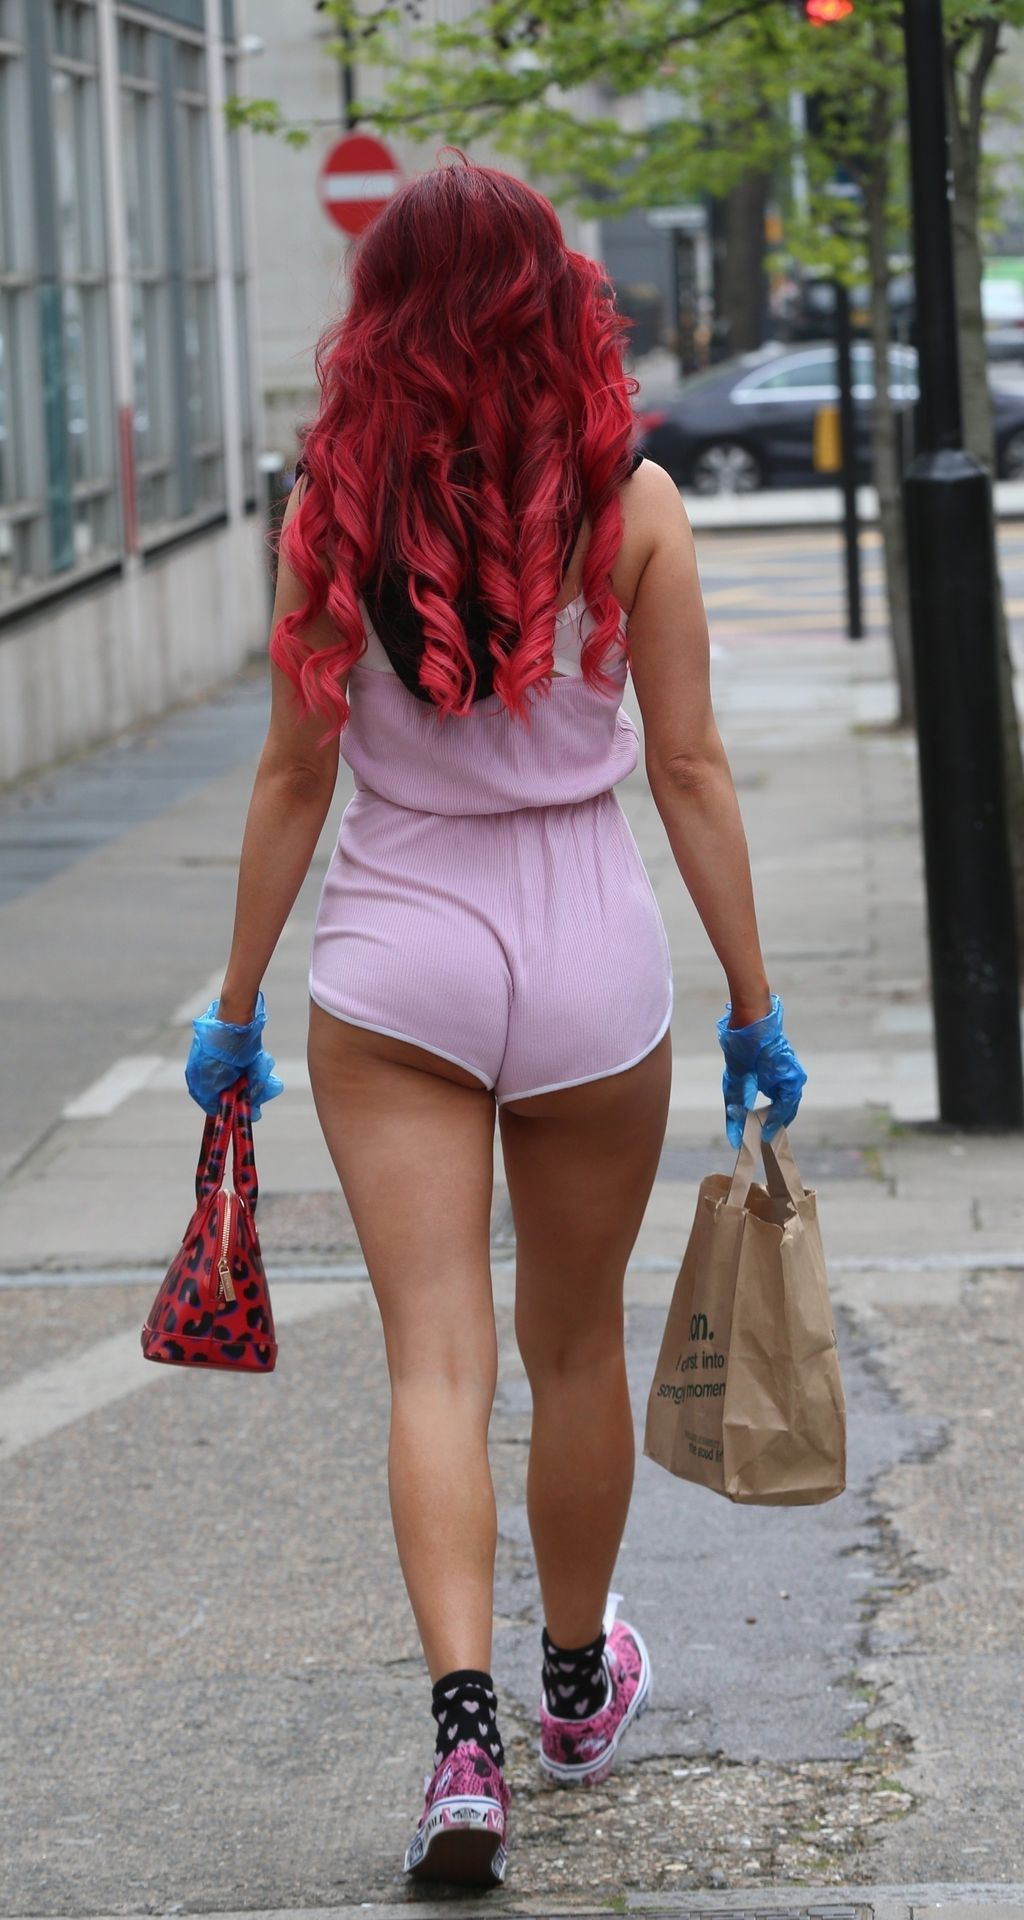 Carla Howe Protects Herself from COVID-19 with Mask and Gloves (24 Photos)